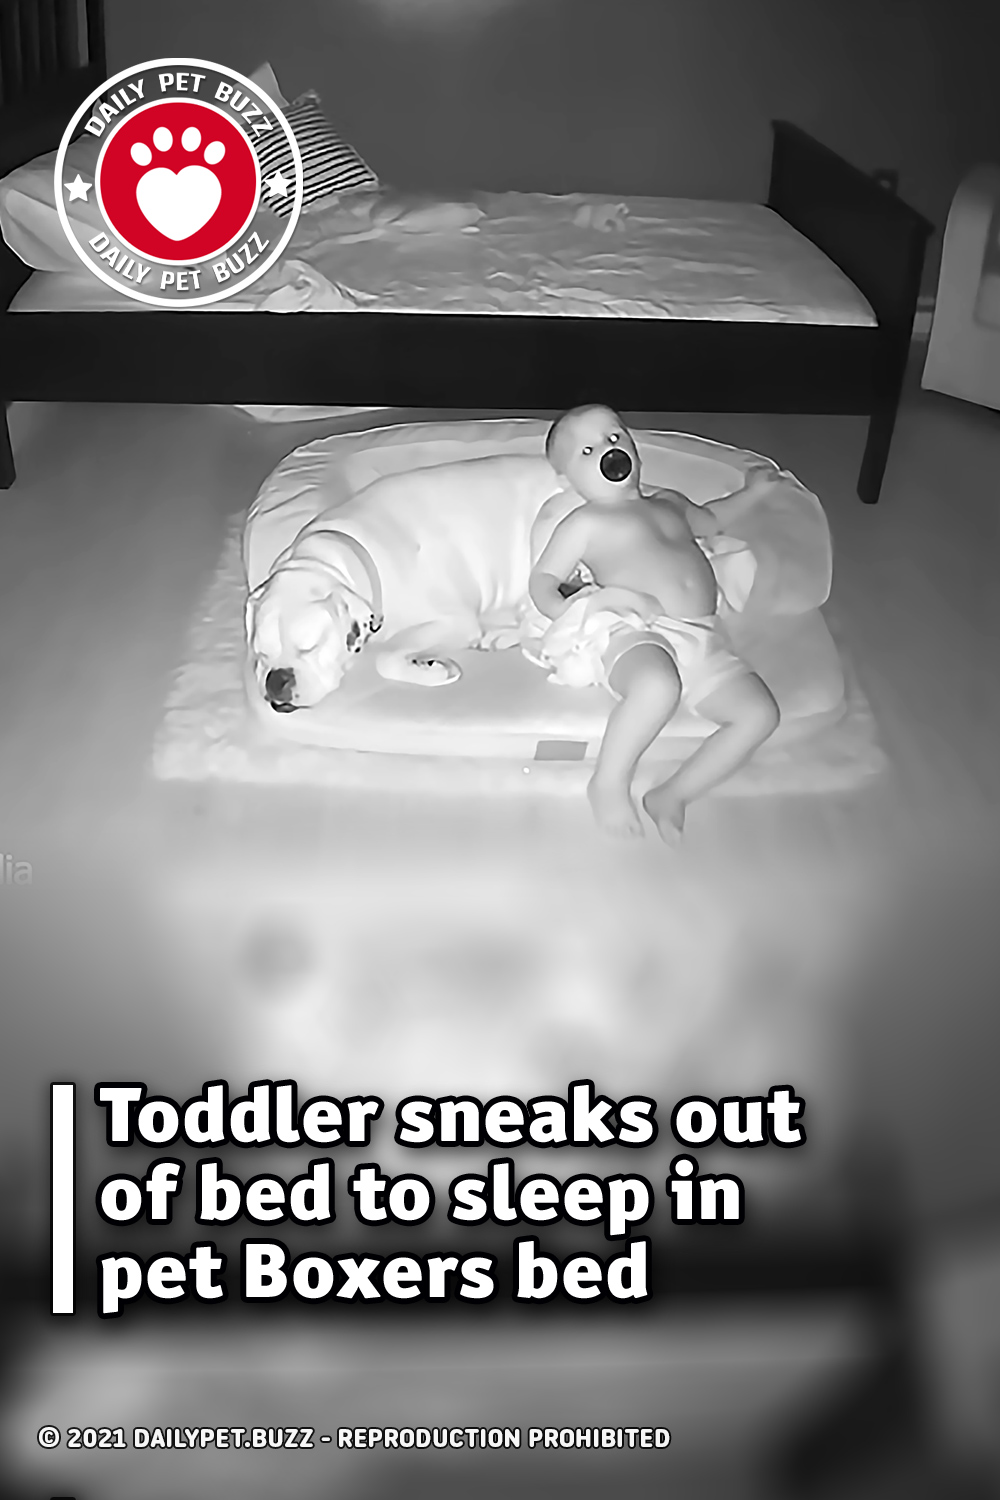 Toddler sneaks out of bed to sleep in pet Boxers bed